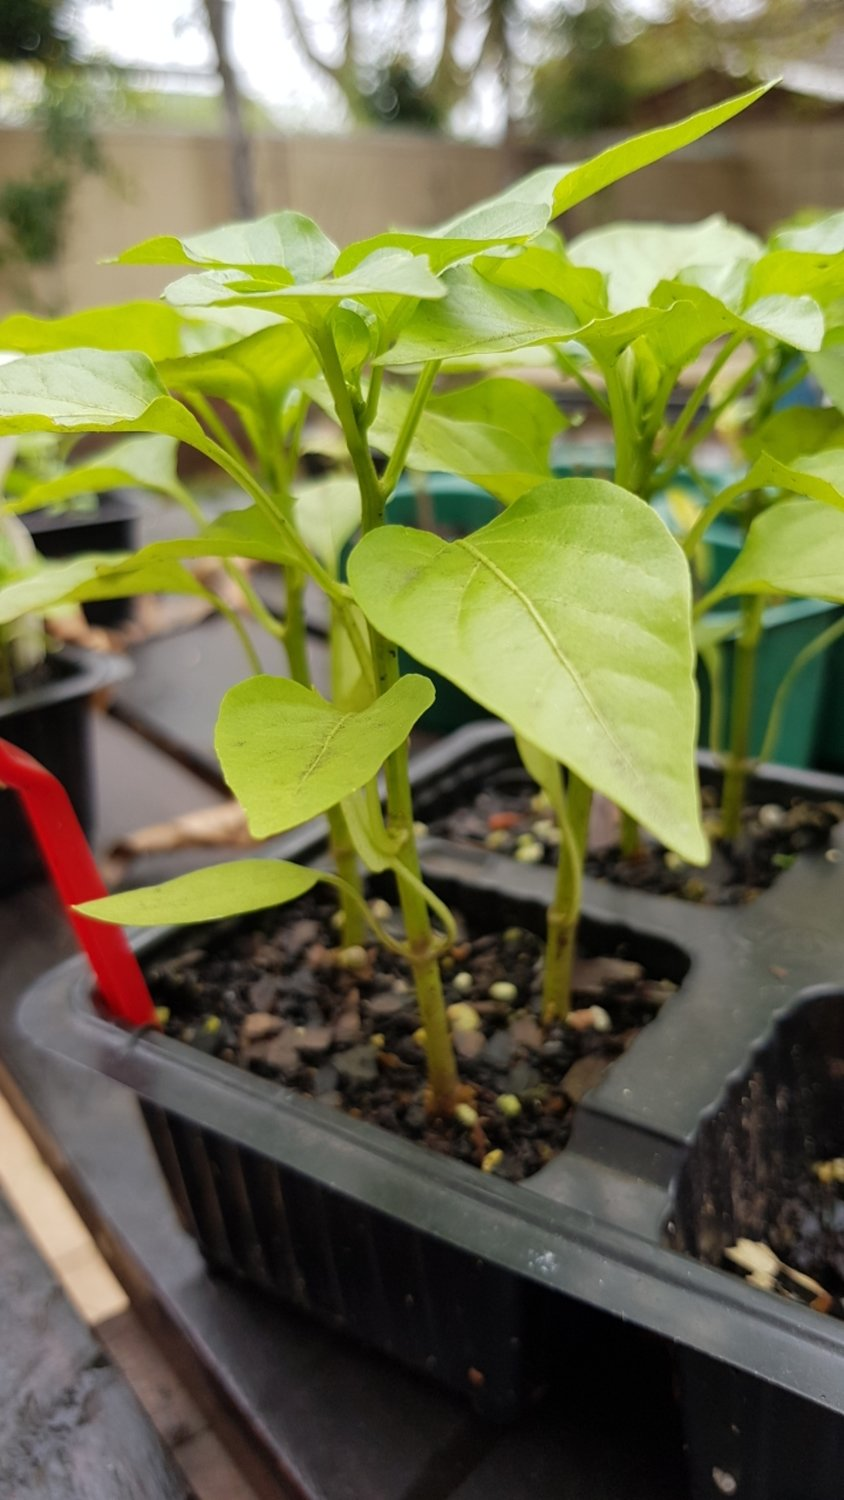 Mixed Baby Sweet Pepper Plants - 20 Seeds